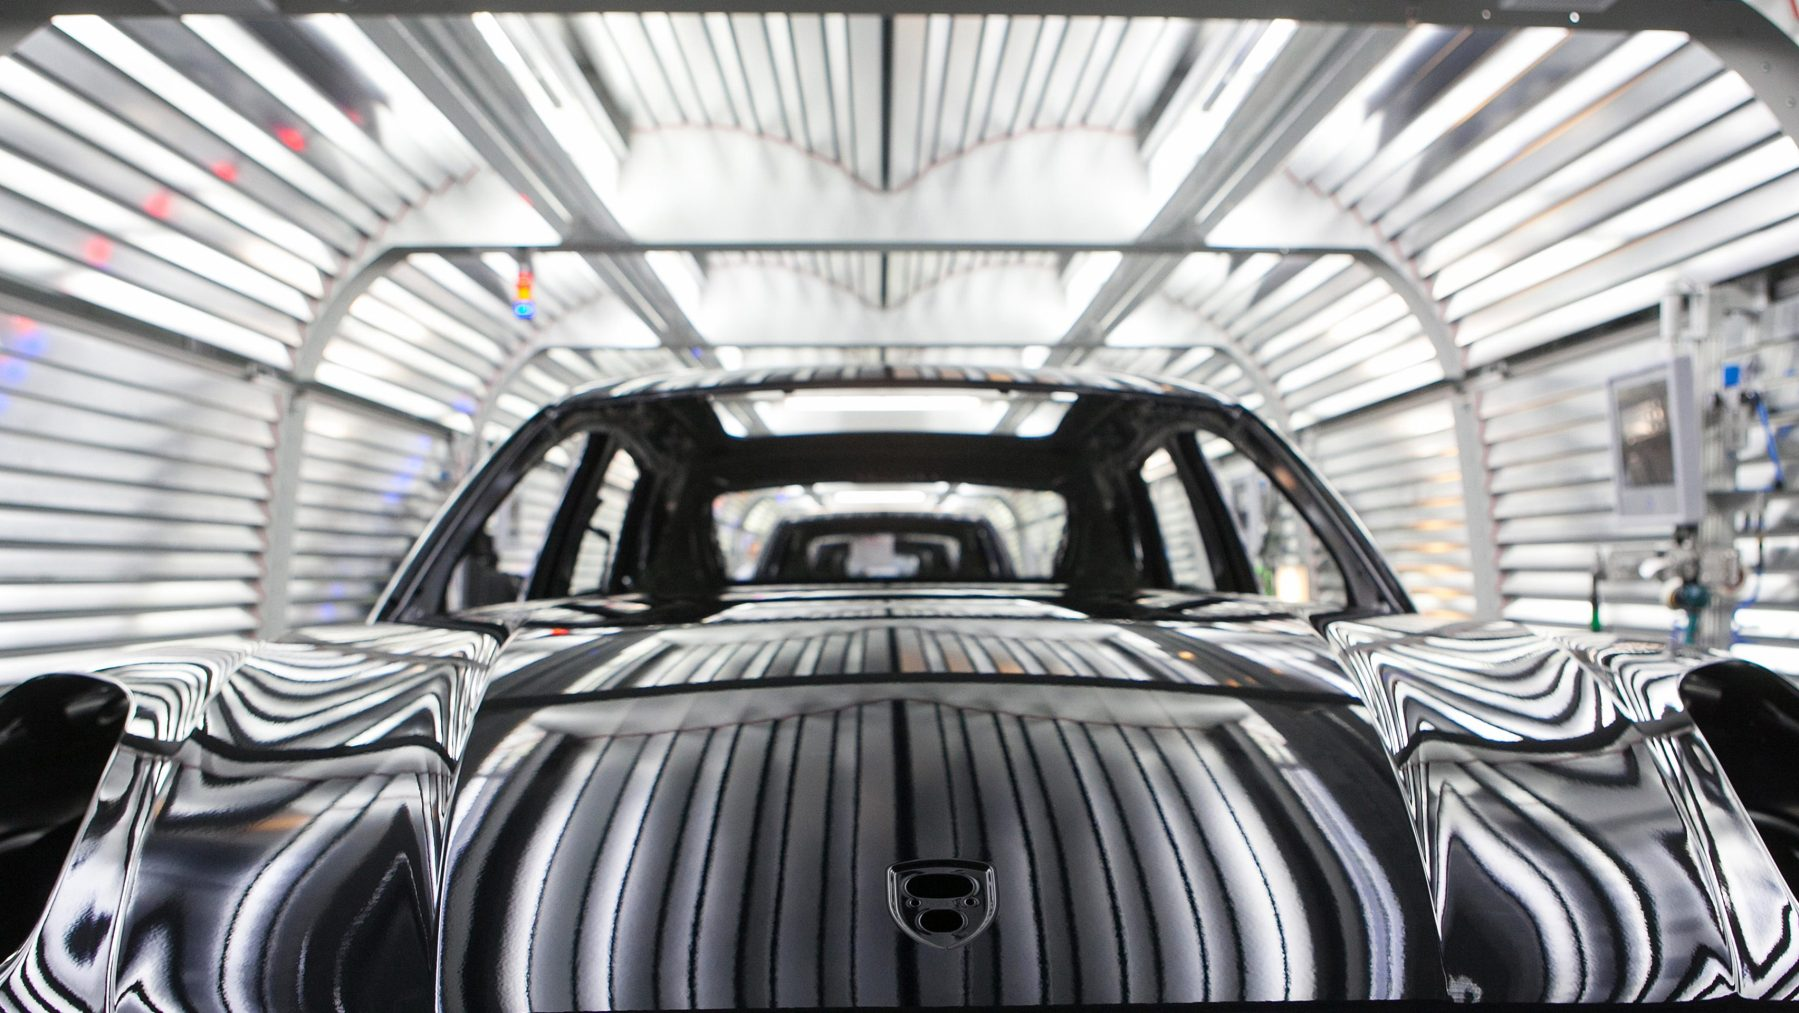 Painted chassis of Porsche Macan sport-utility vehicles (SUV) pass through the paint shop inside the newly expanded Porsche AG factory in Leipzig, Germany, on Wednesday, Feb. 5, 2014. Porsche AG Chief Executive Officer Matthias Mueller said the high-end automaker will exceed 200,000 in annual deliveries in 2015, three years earlier than first targeted, on demand for the Macan compact sport-utility vehicle going on sale later this year. (Krisztian Bocsi/Bloomberg via Getty Images)